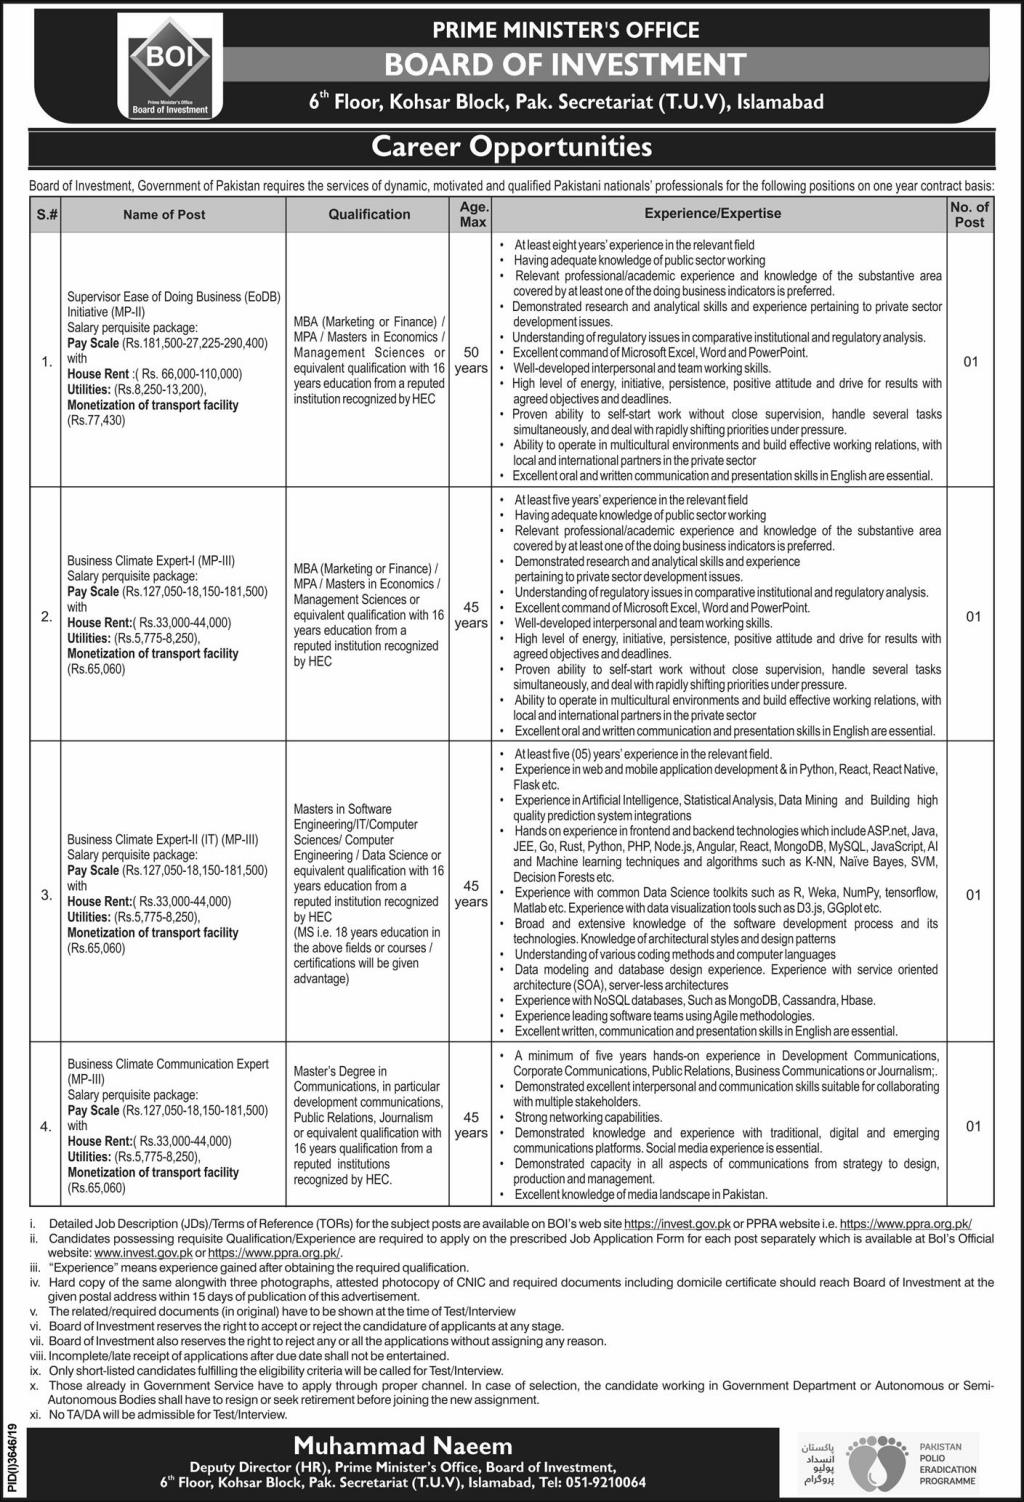 PRIME MINISTER'S OFFICE Board of Investment Career Opportunities